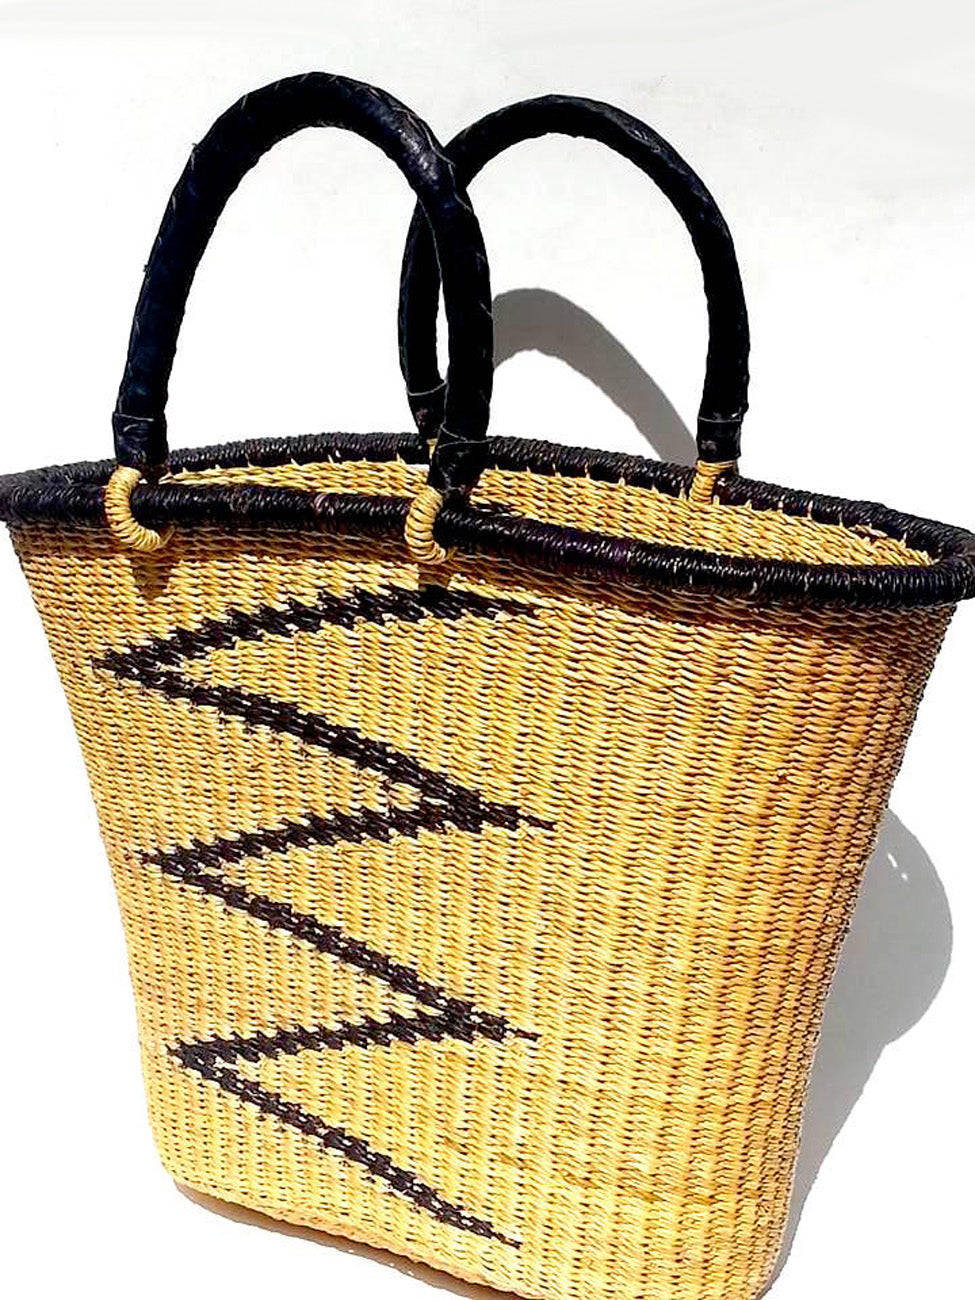 African Market Bucket Tote Bag Leather Handles